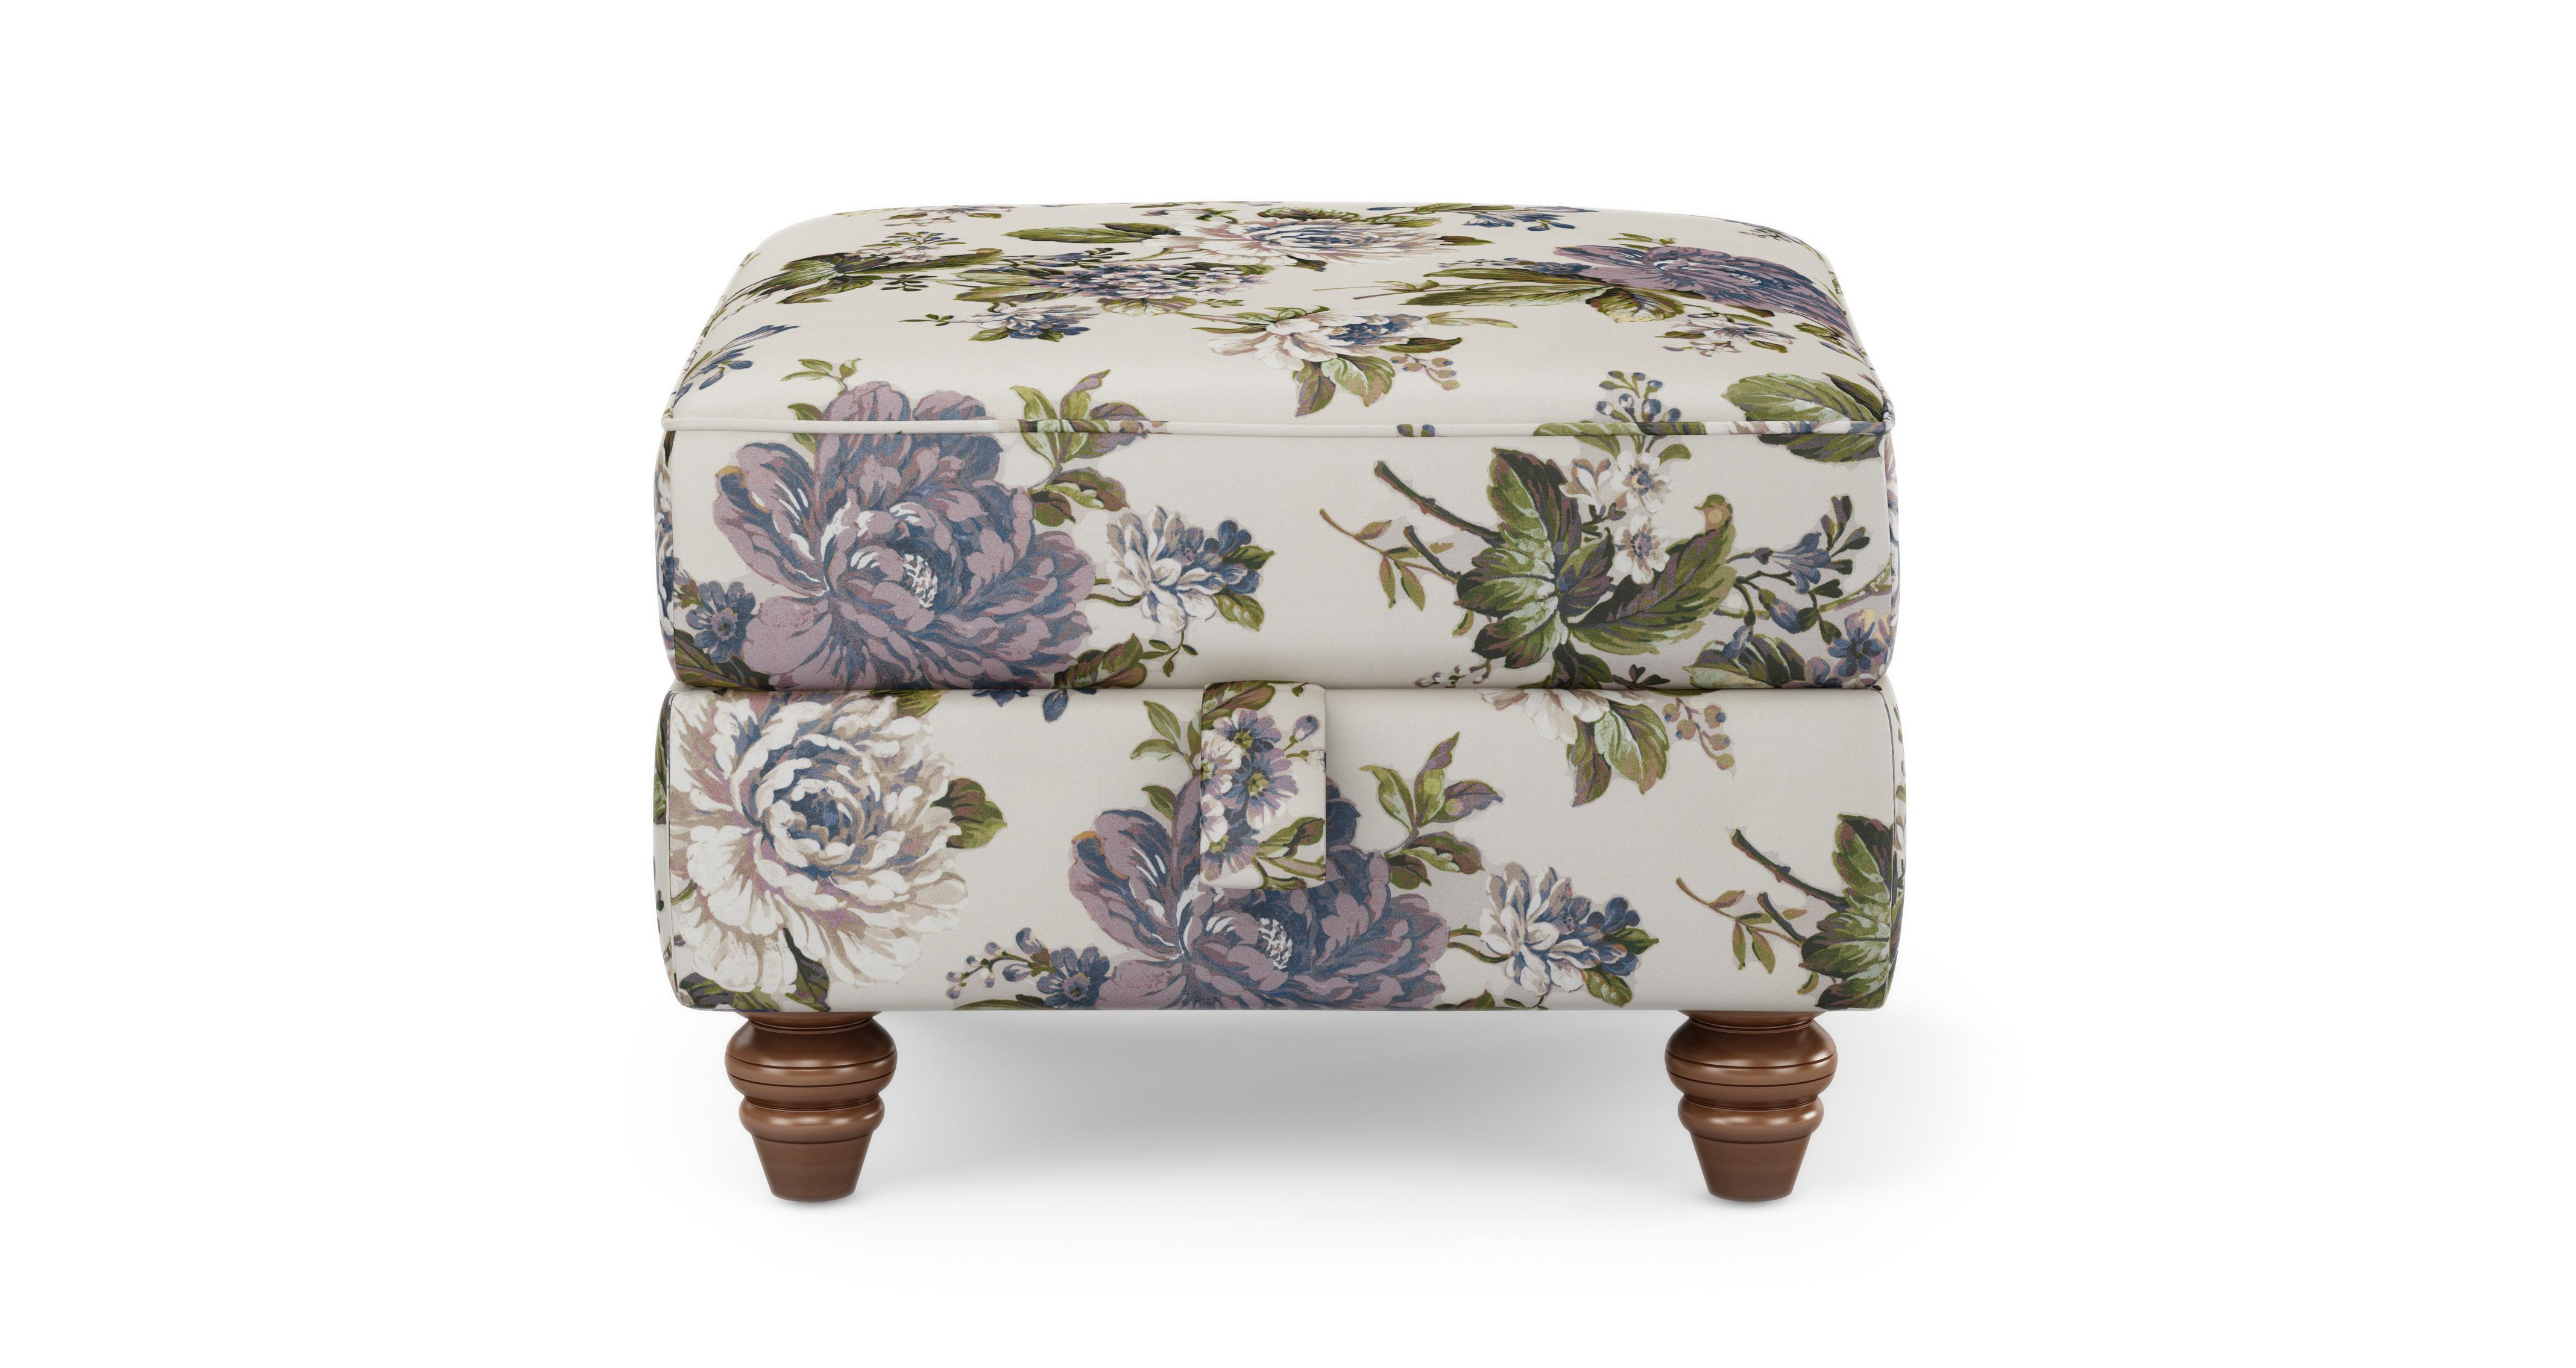 Dfs Sofa Care Ellie Floral Storage Footstool Ellie Floral | Dfs